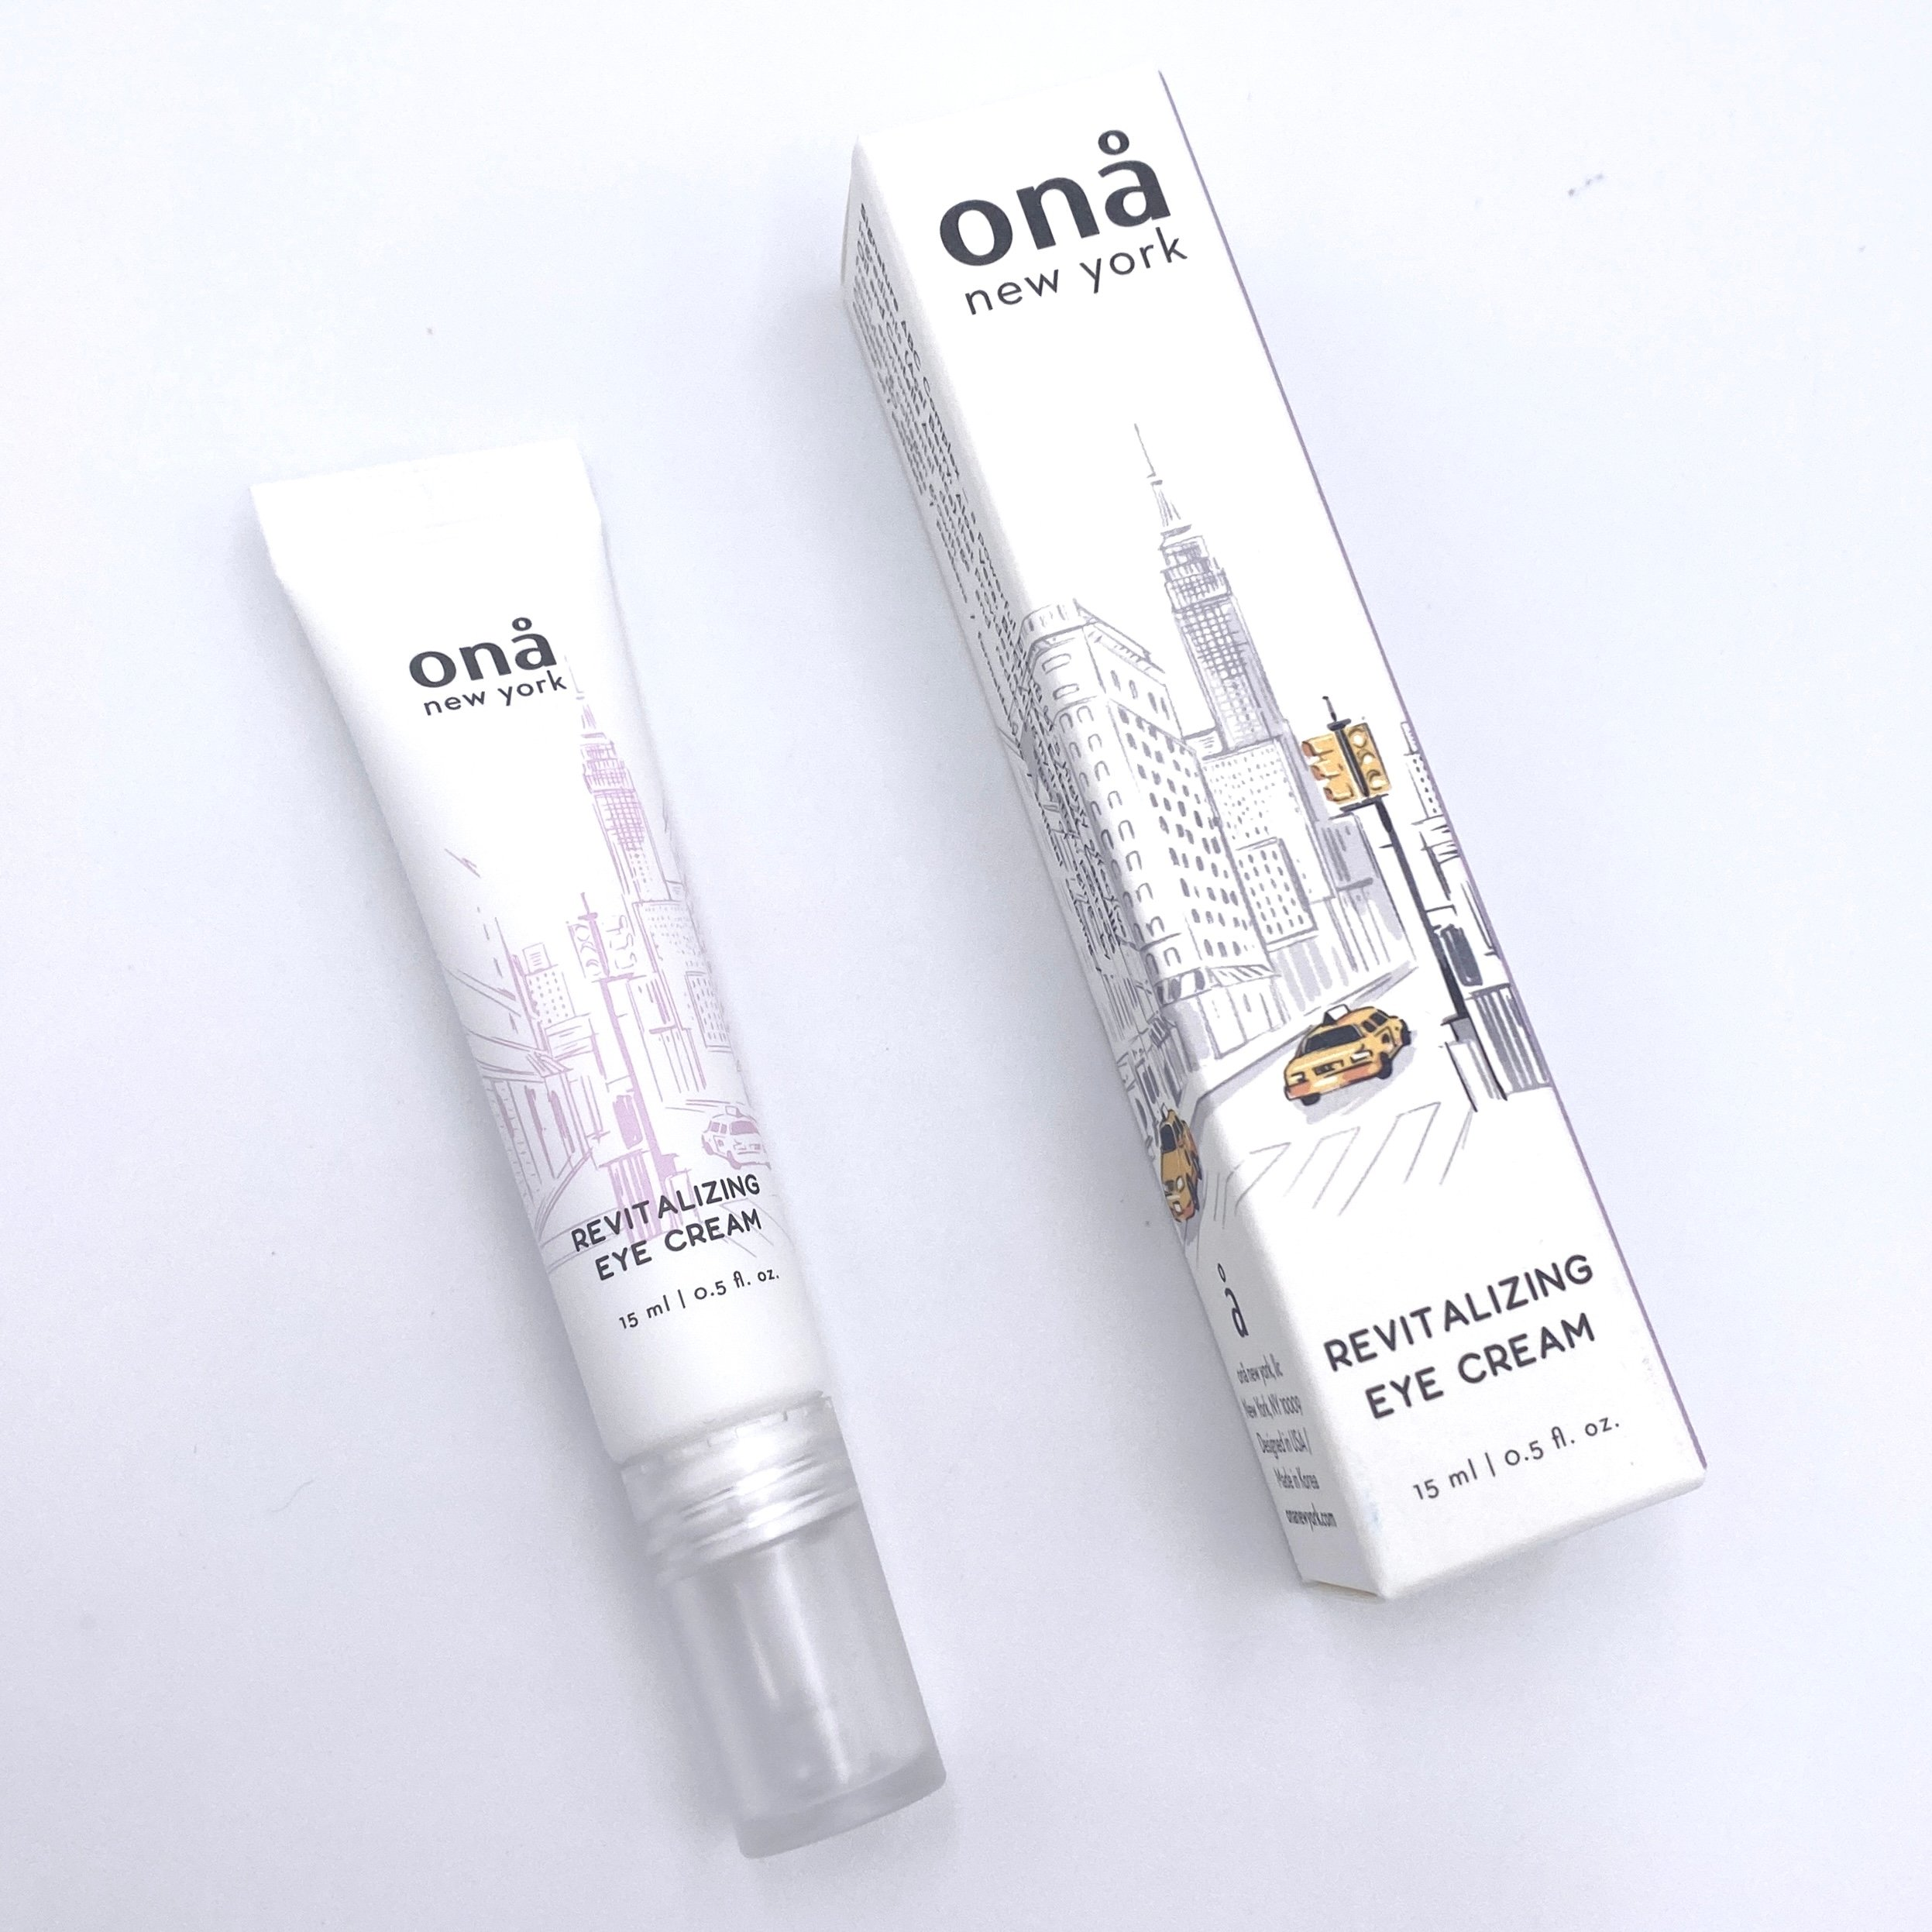 Ona New York Revitalizing Eye Cream Front for The Beem Box March 2021